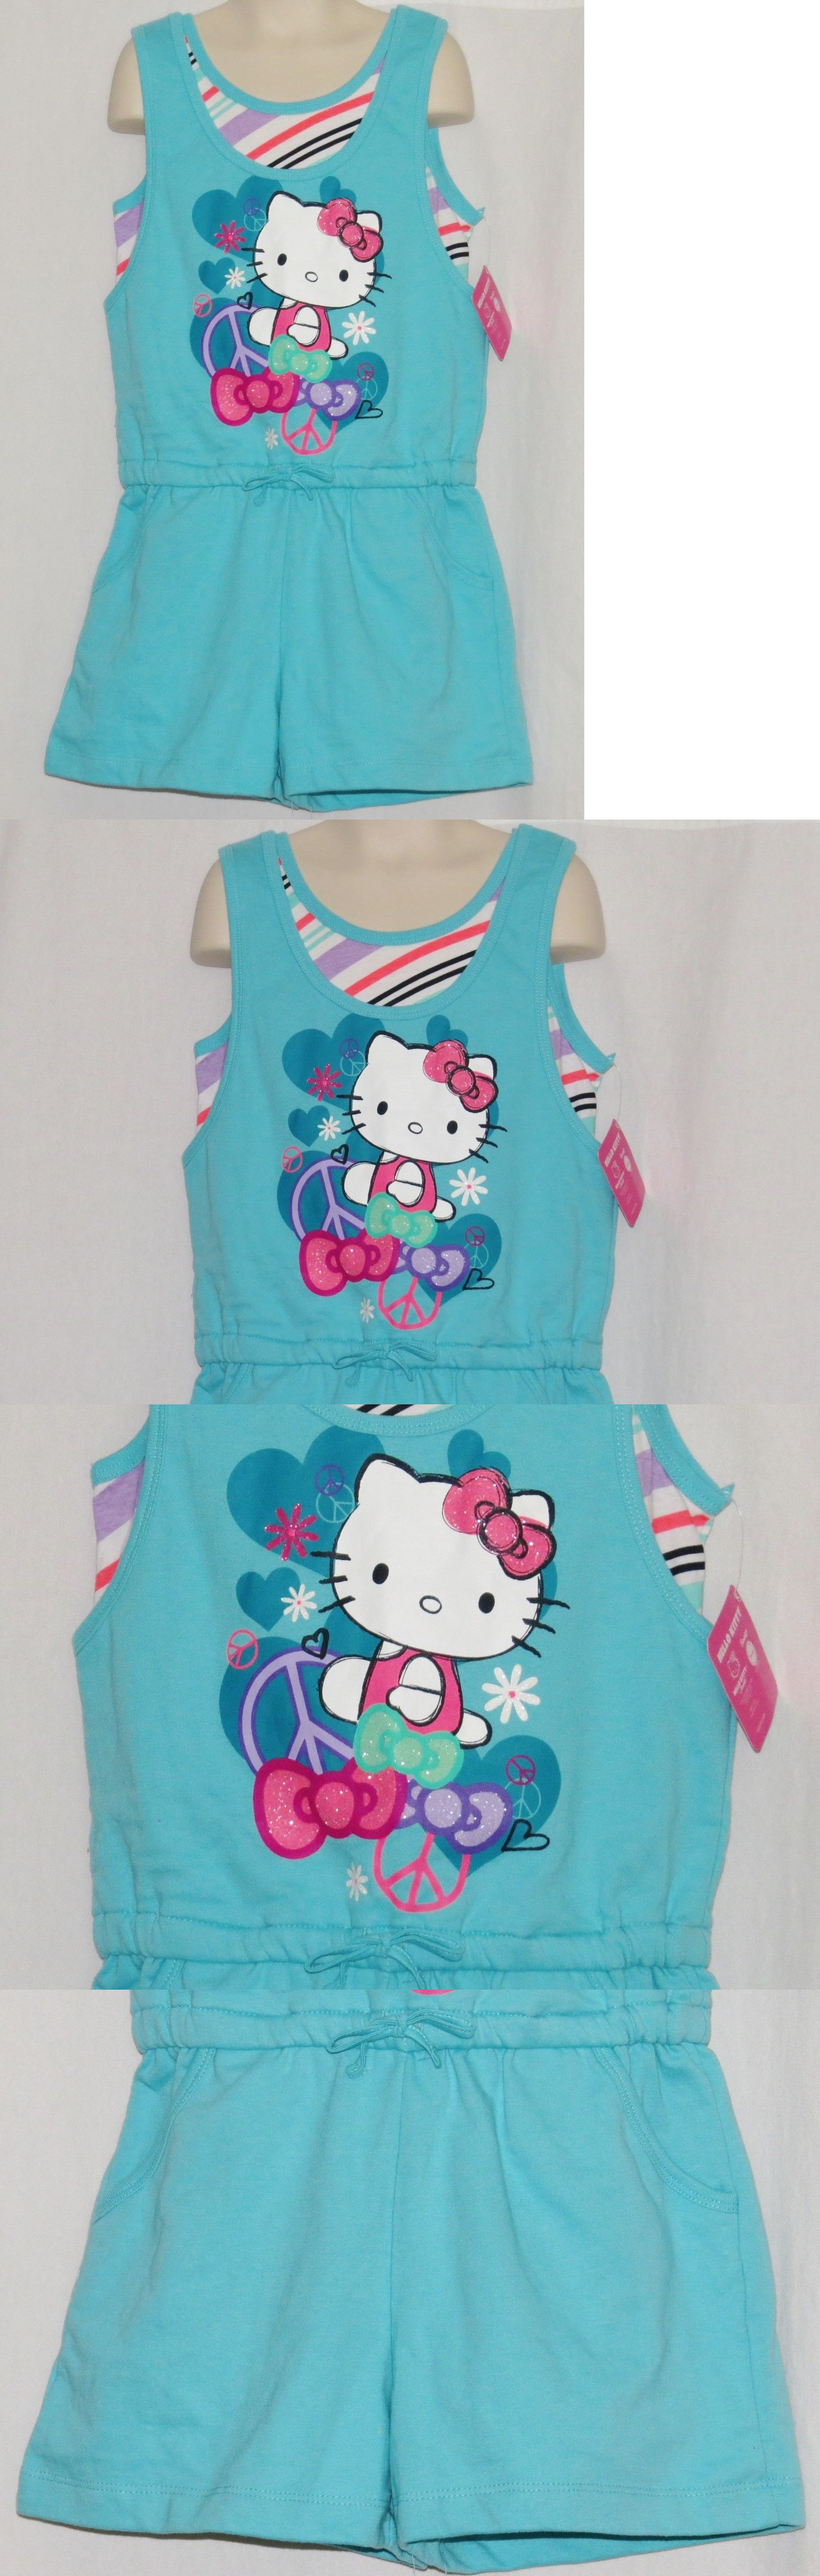 a766805e4 Jumpsuits and Rompers 175528: Hello Kitty Girls 10 One Piece Outfit New Nwt  Jumper Romper Peace Hearts Sanrio -> BUY IT NOW ONLY: $11.49 on #eBay # jumpsuits ...